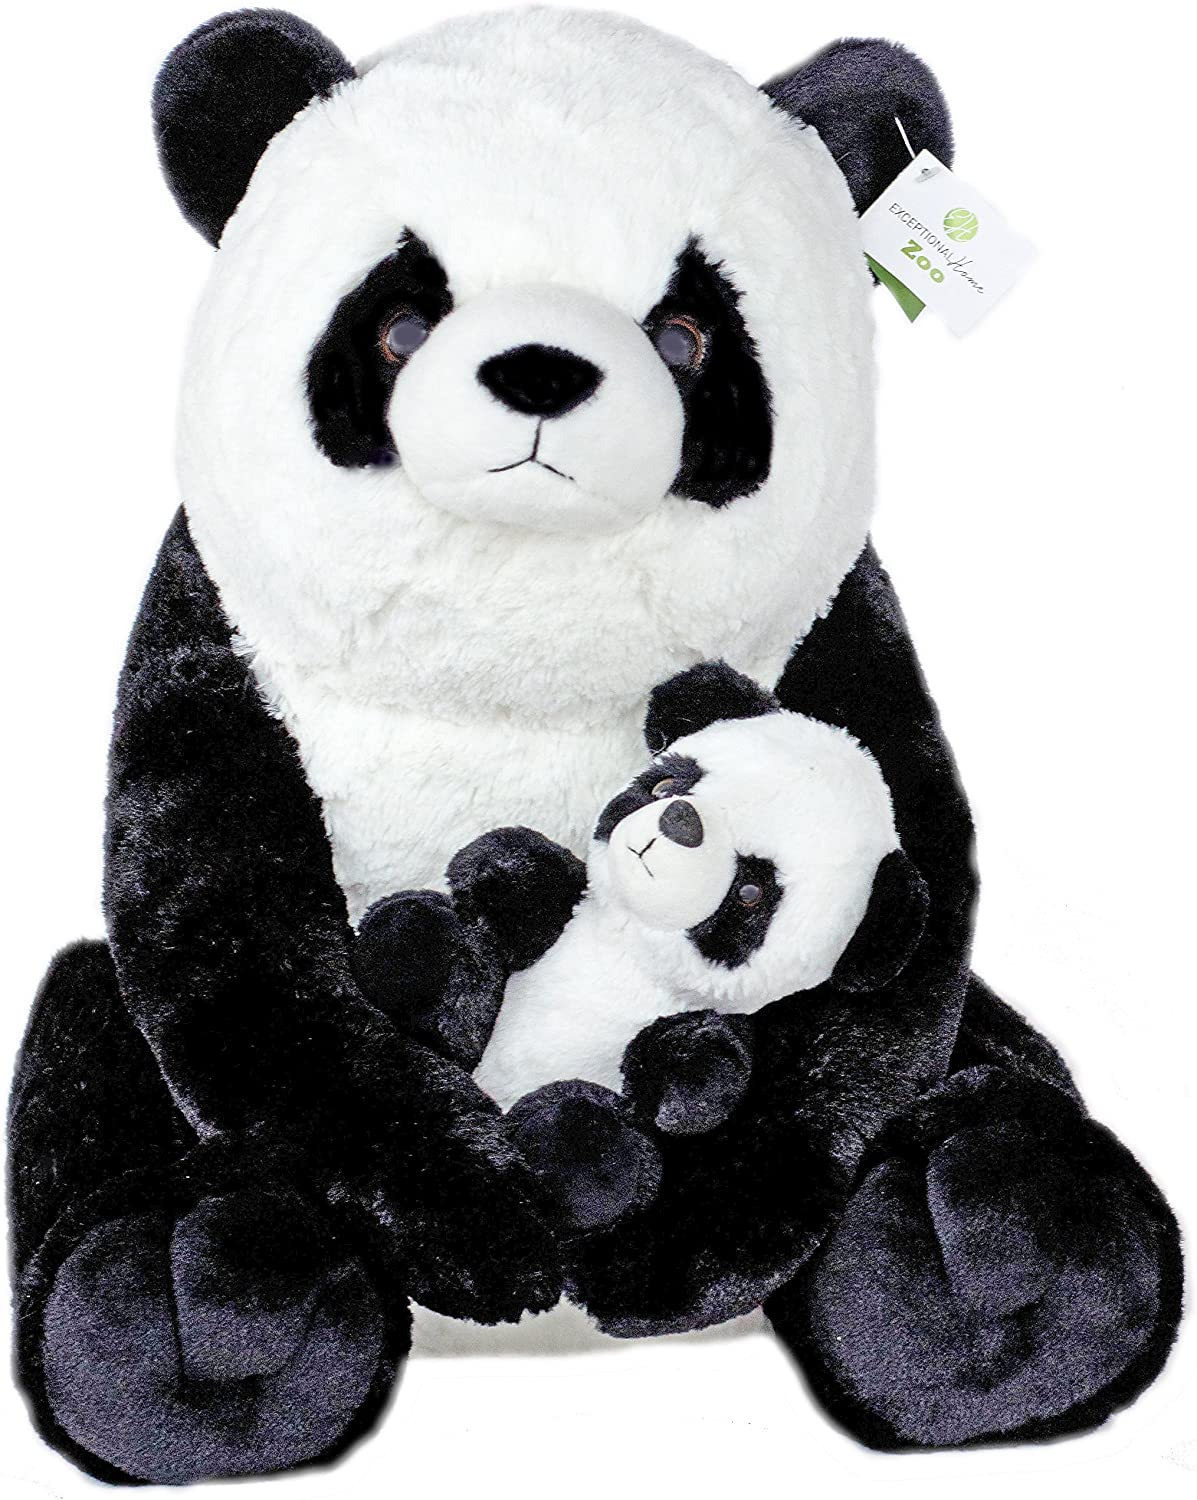 Exceptional Home Giant Pandas Plush Stuffed Animals  18  Teddy Bear with Baby Panda  Kids Toys  Gift